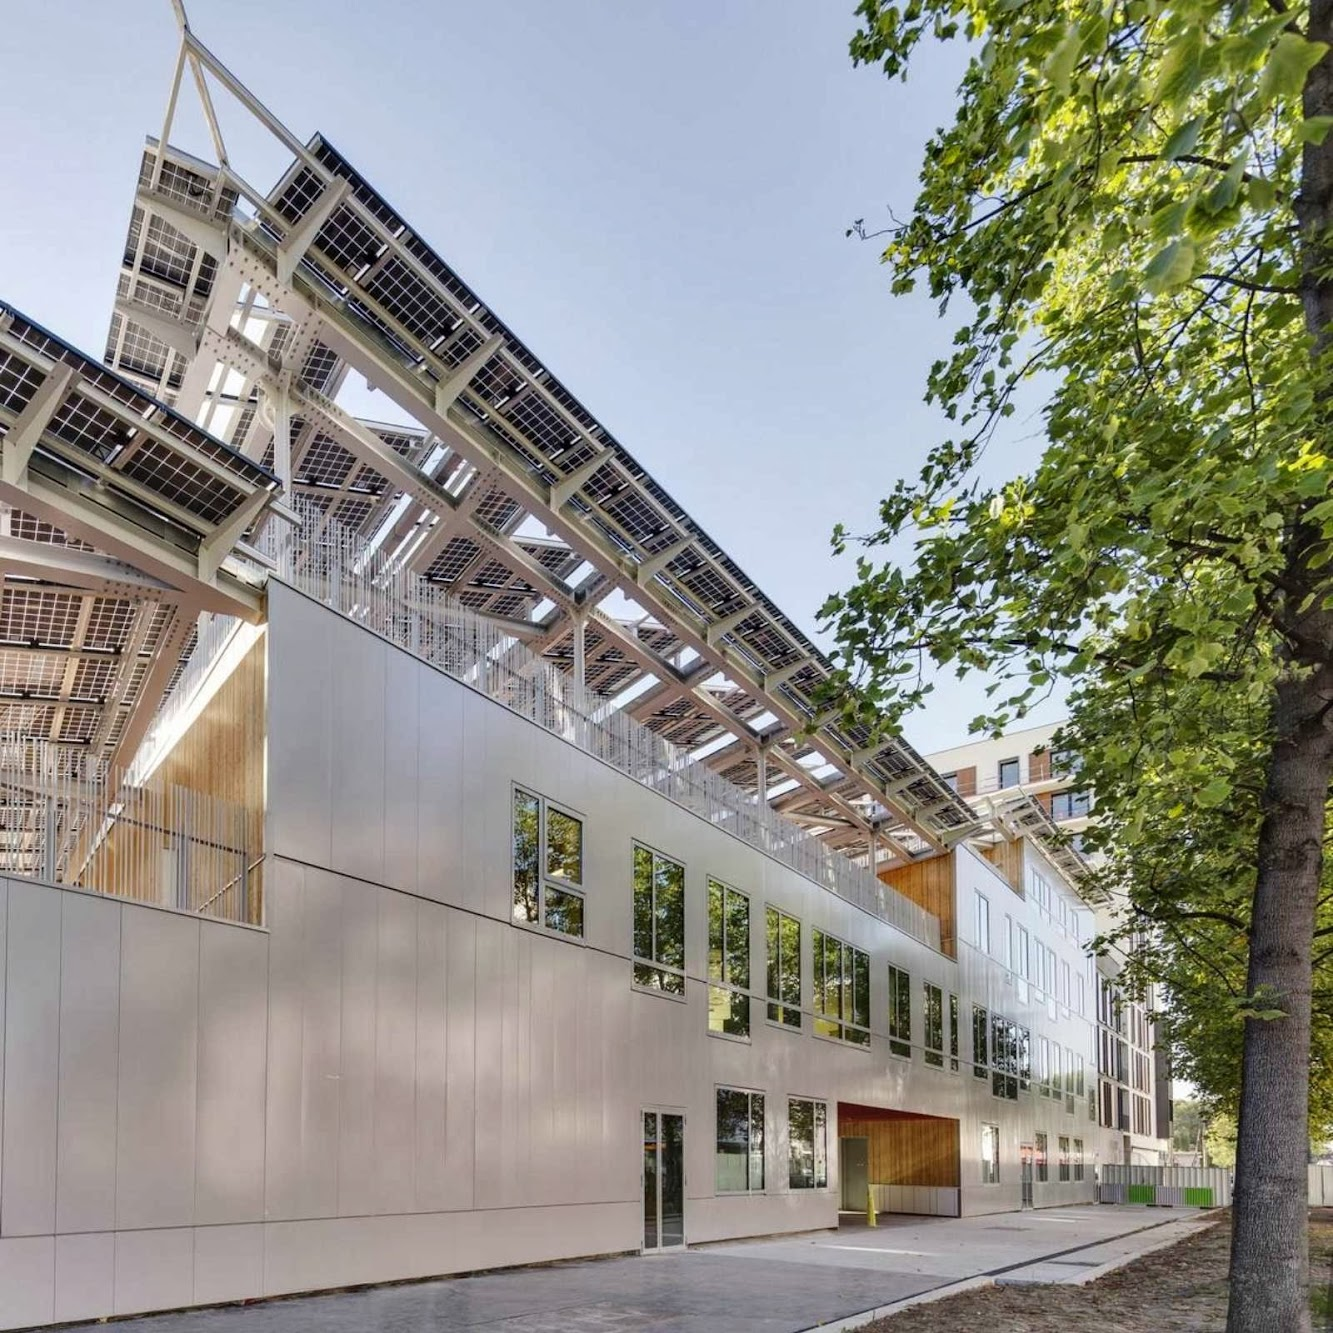 Saint-Ouen, Francia: Docks School by Mikou Design Studio